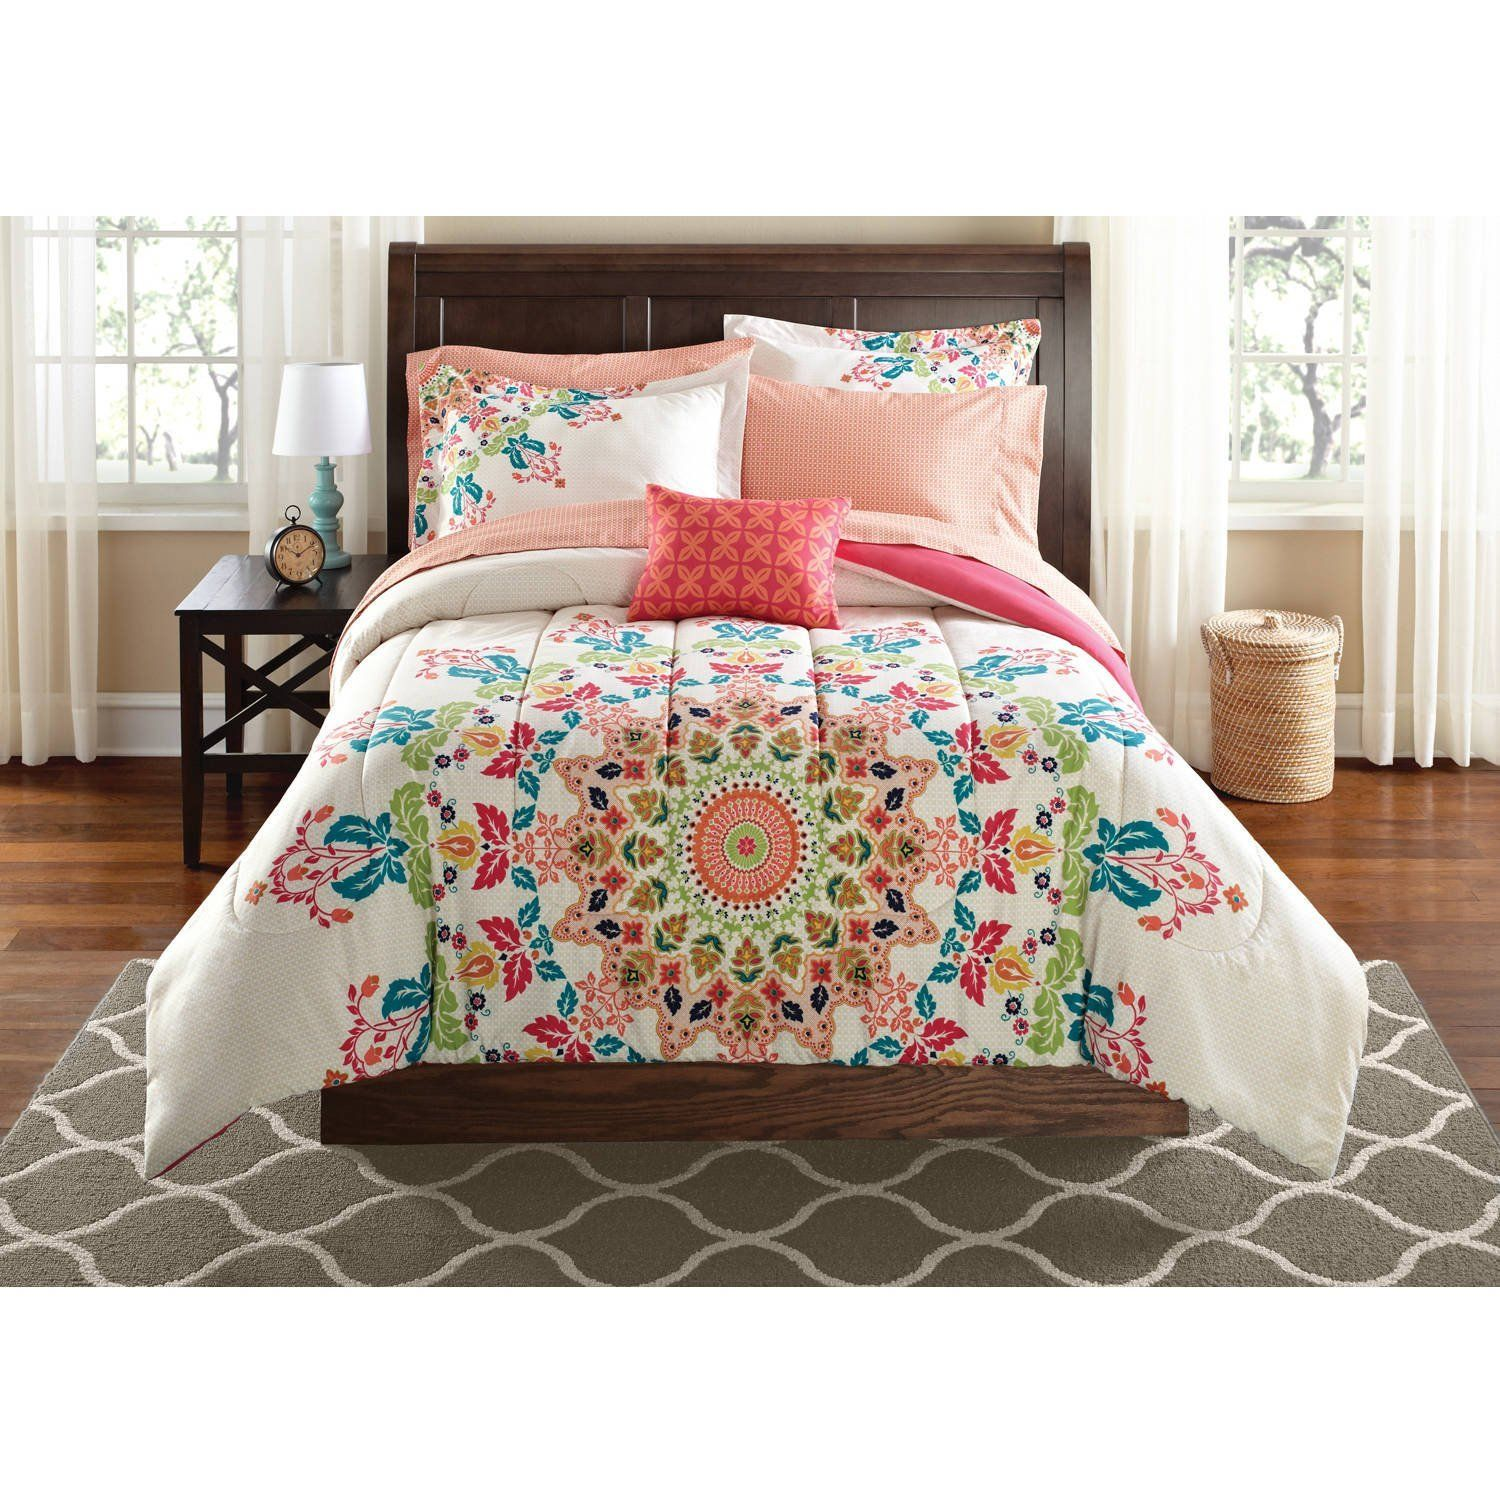 Unique Bedding Sets Green Girls Full Rainbow Unique Prism Pink Blue Green Colorful